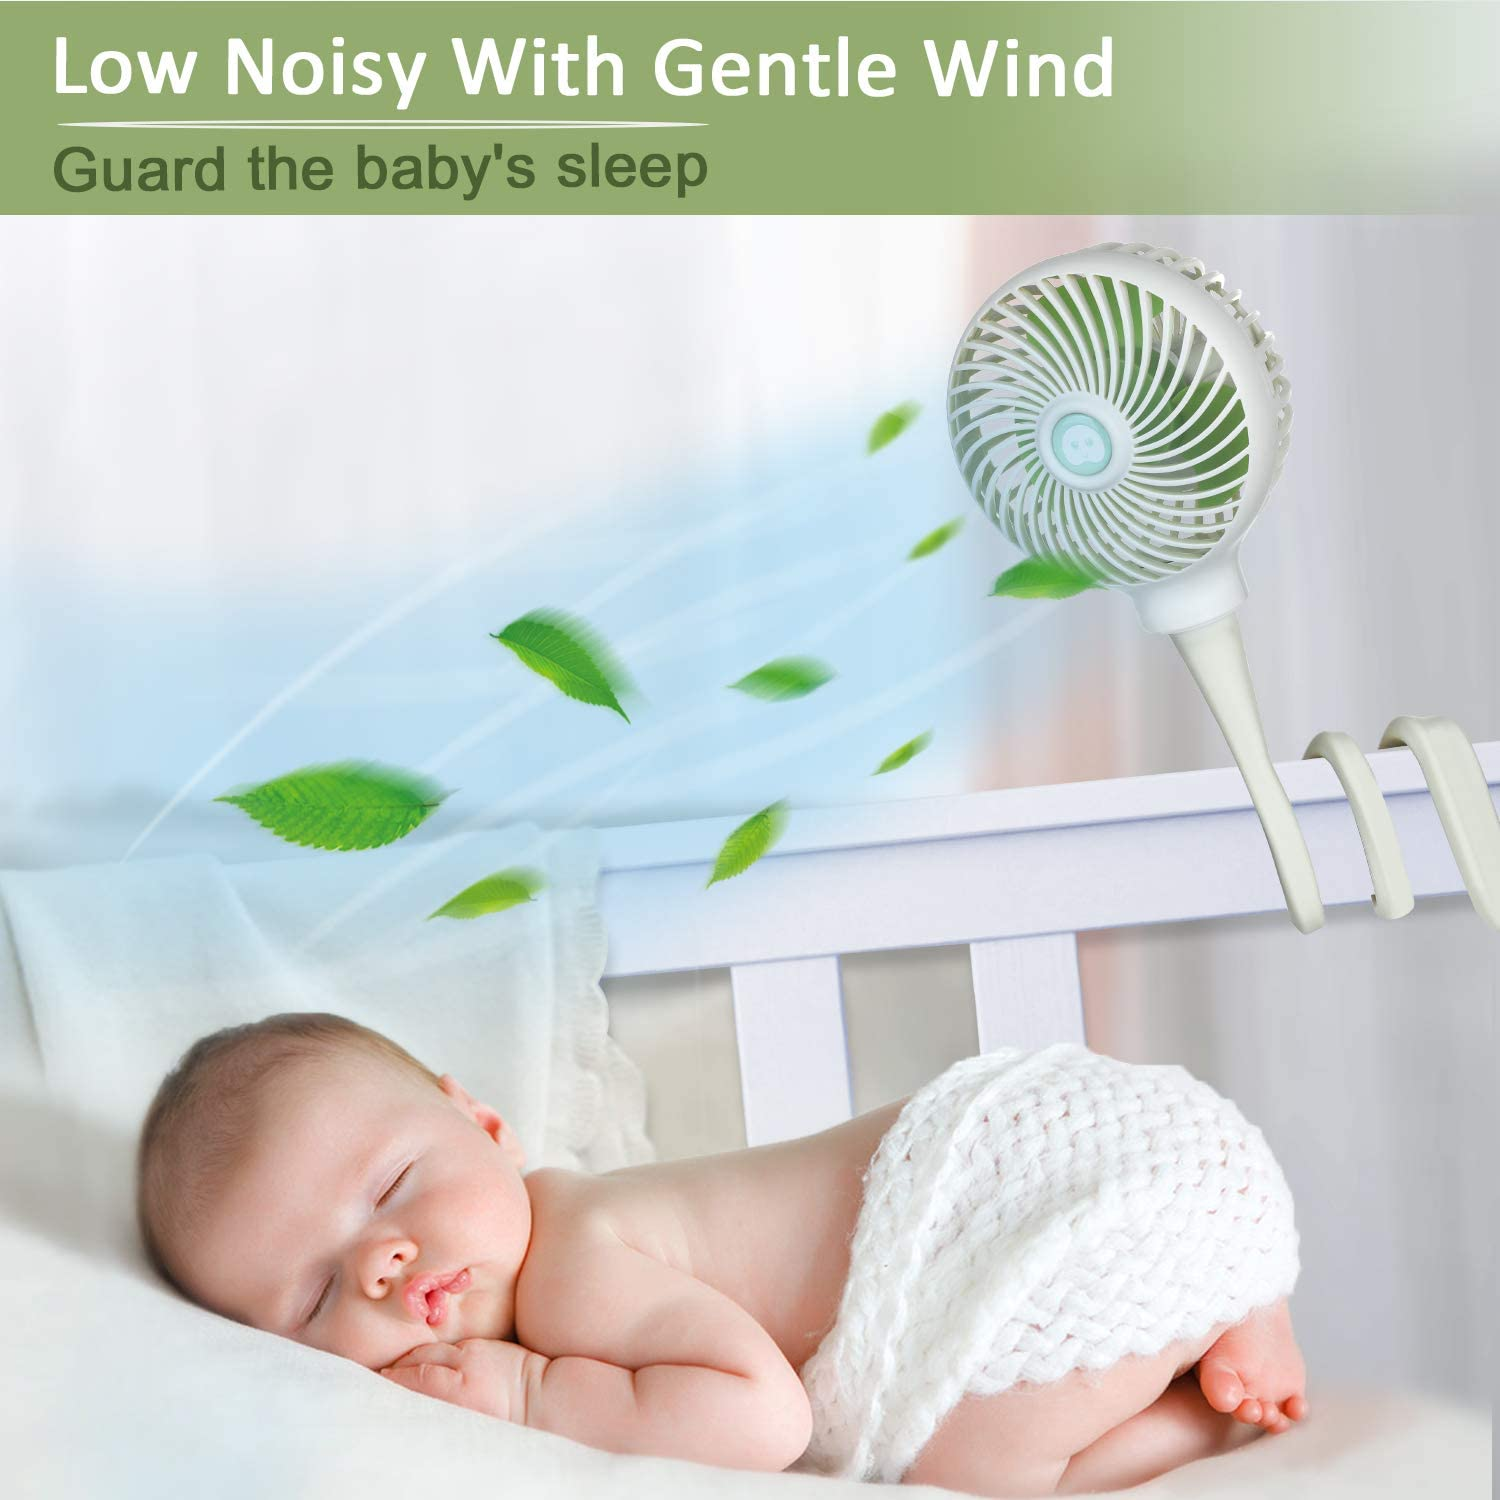 Car Seat Fan 3000 mAh Rechargeable Battery Operated USB Personal Desk Fan White Anpro Stroller Fan for Baby Portable Baby Fan Clip on Stroller//Crib with Flexible Stand